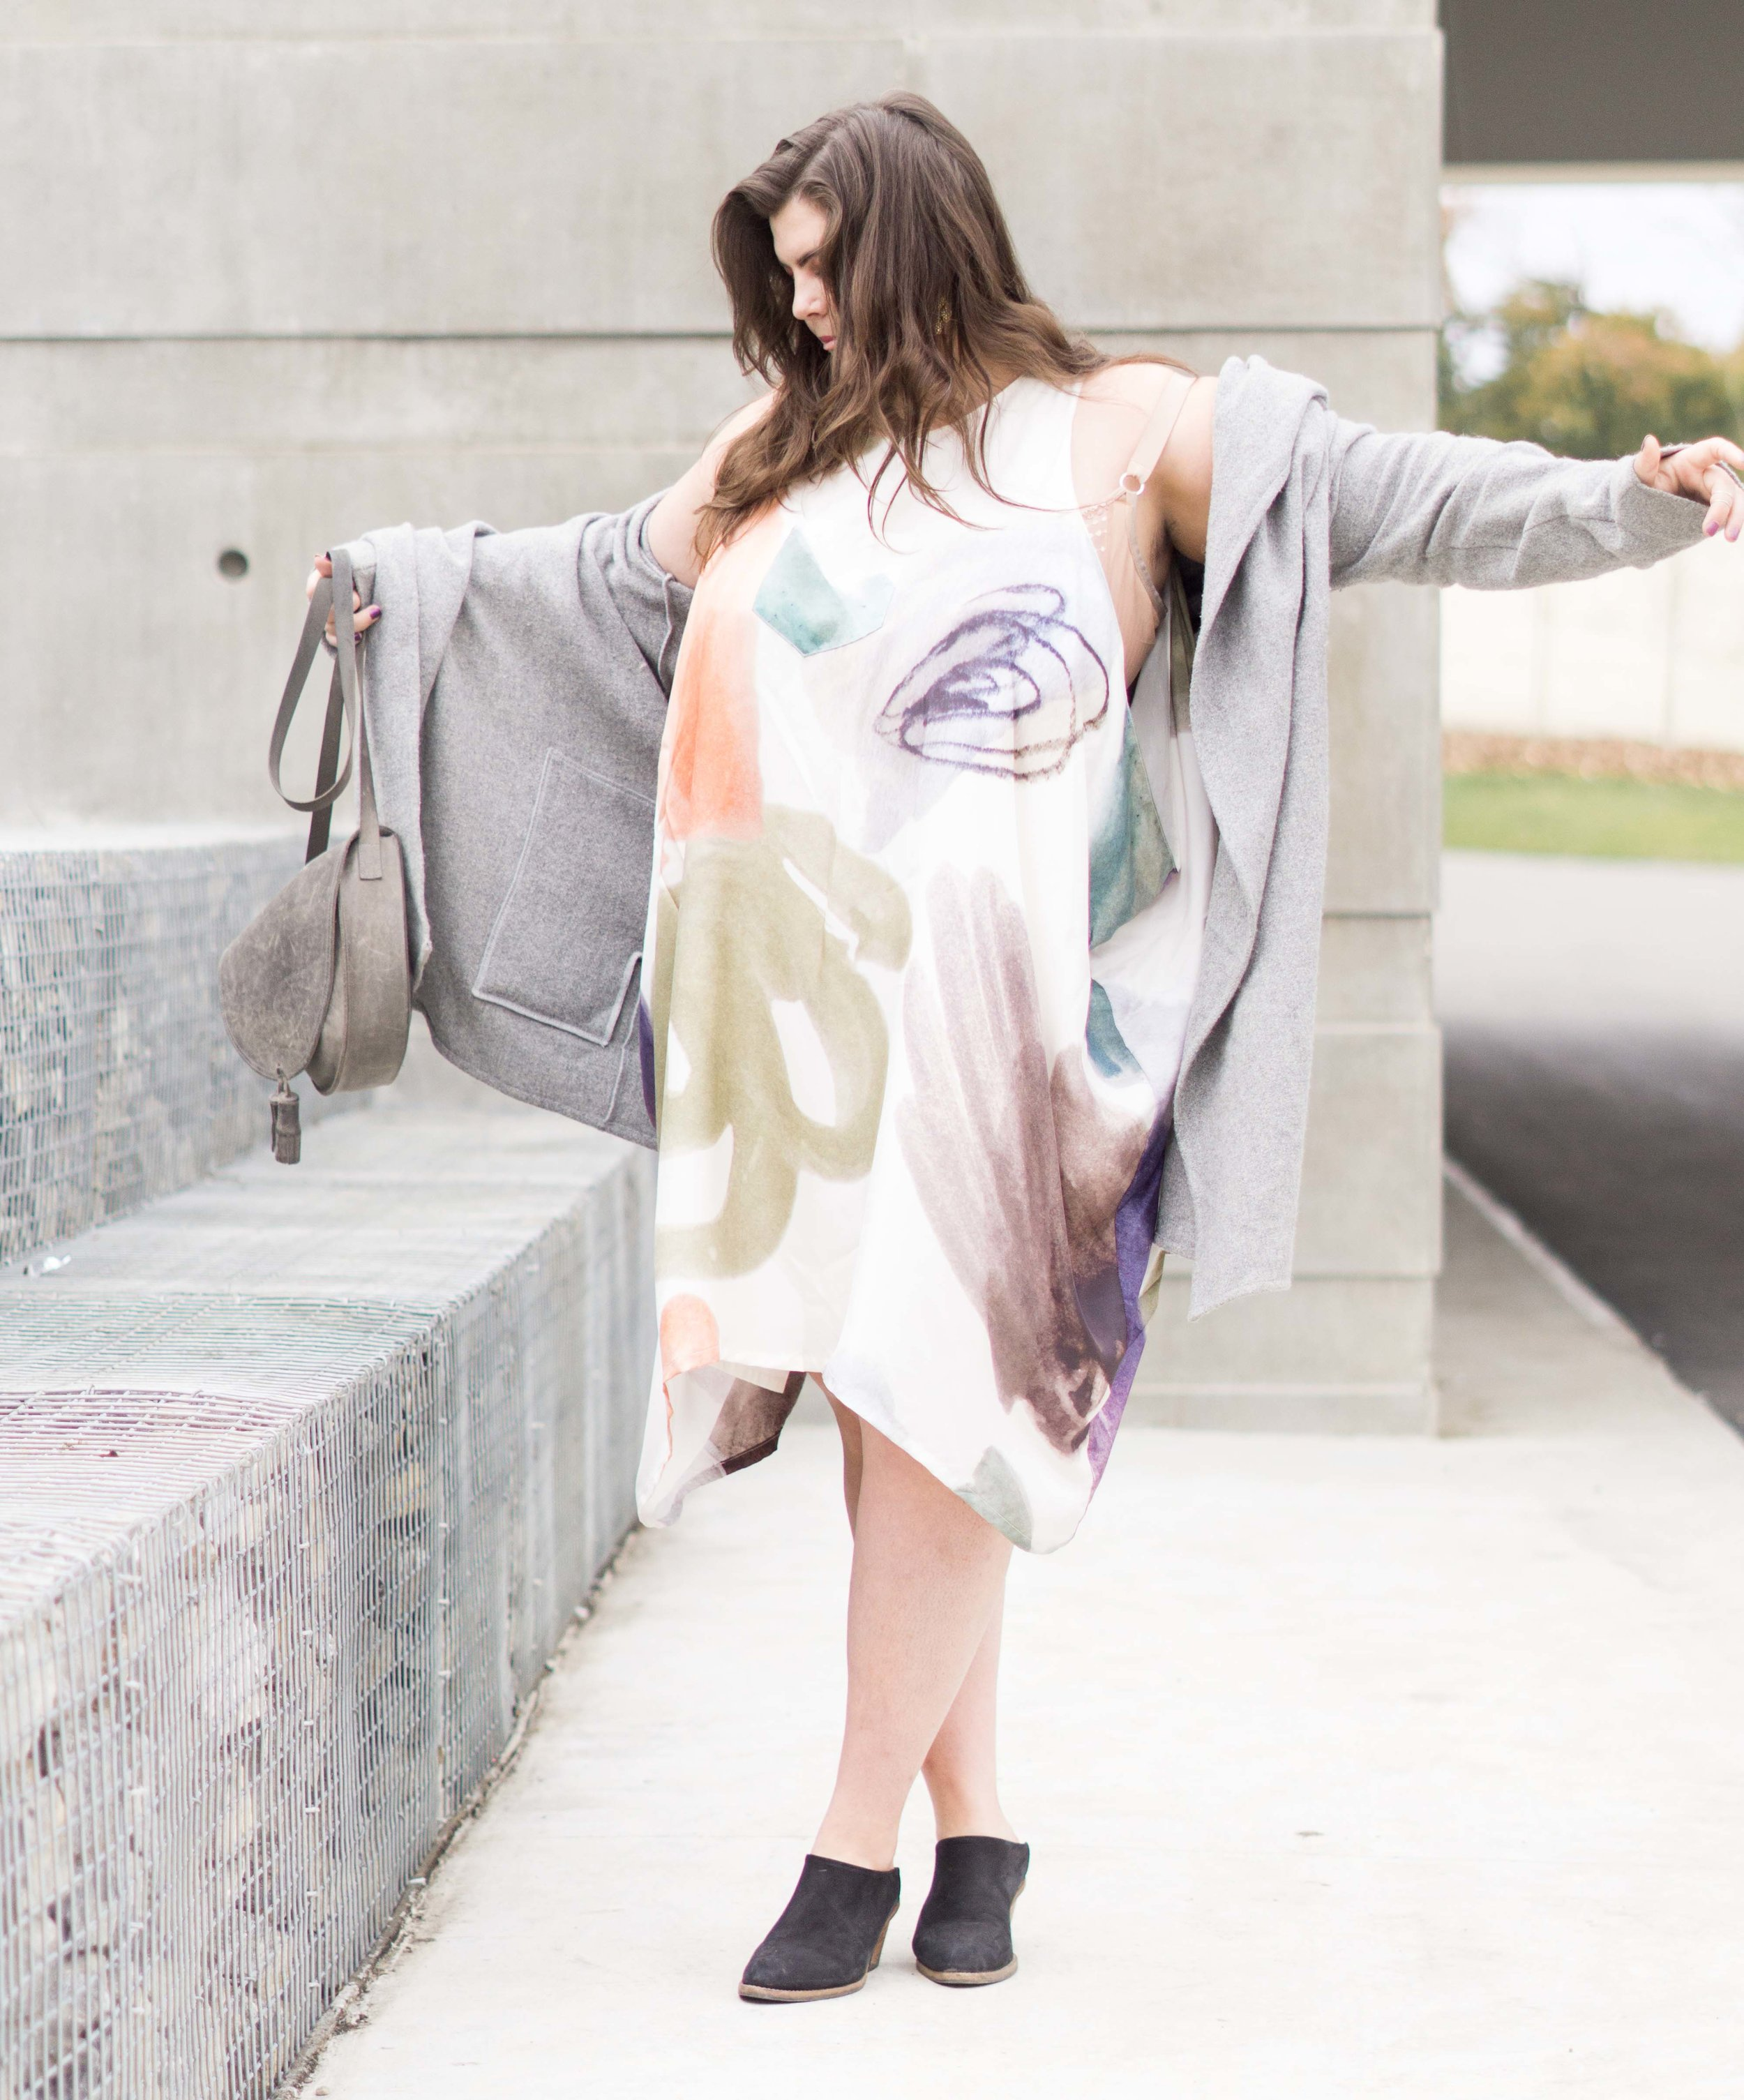 The Complete List of Slow Fashion Brands for Plus Size Bodies - A long time in the works, this list has been repeatedly requested and I'm so delighted to share it - ethically made brands that dared to expand past a size 14.May this give you a jumping off place to find pieces you'll love. You are not alone, it is really really hard, but there are places, brands, shops that think your body is beautiful and worth adorning with gorgeous garments. And this is that list.